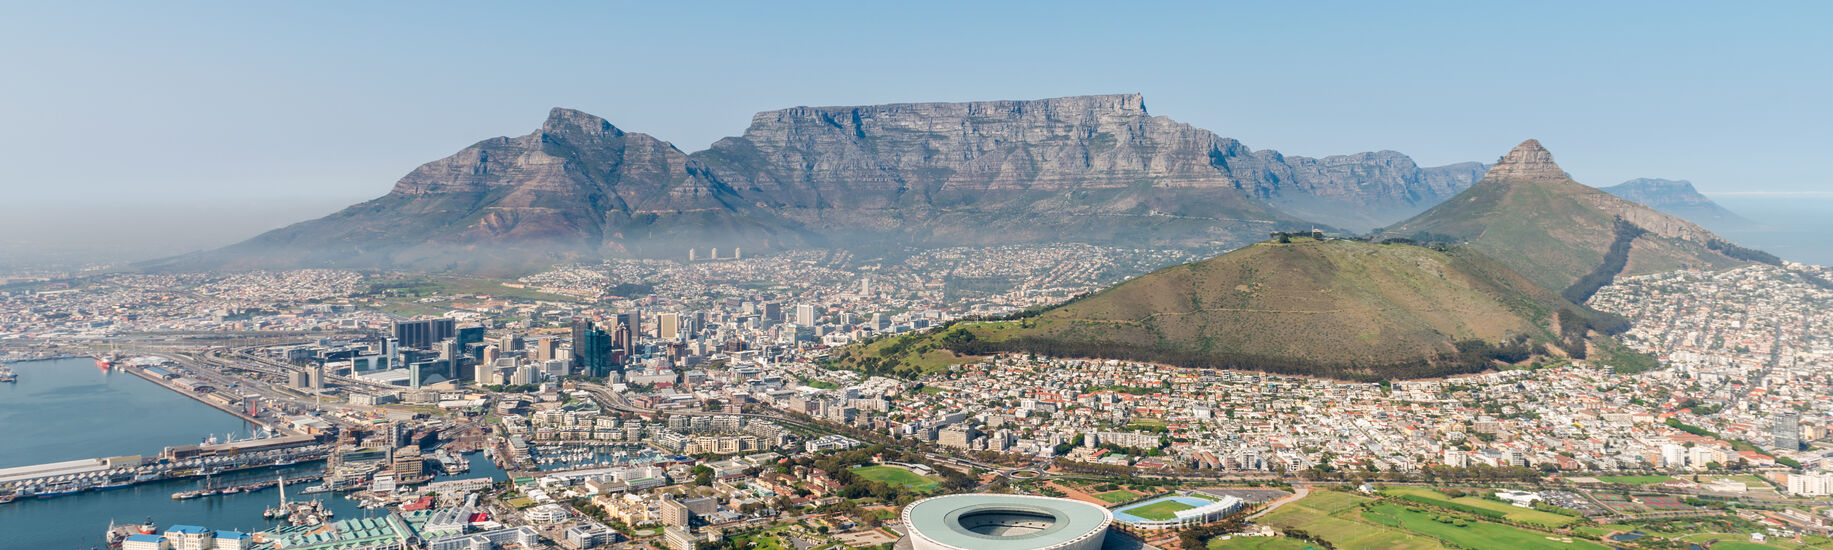 SOUTH AFRICA CITY